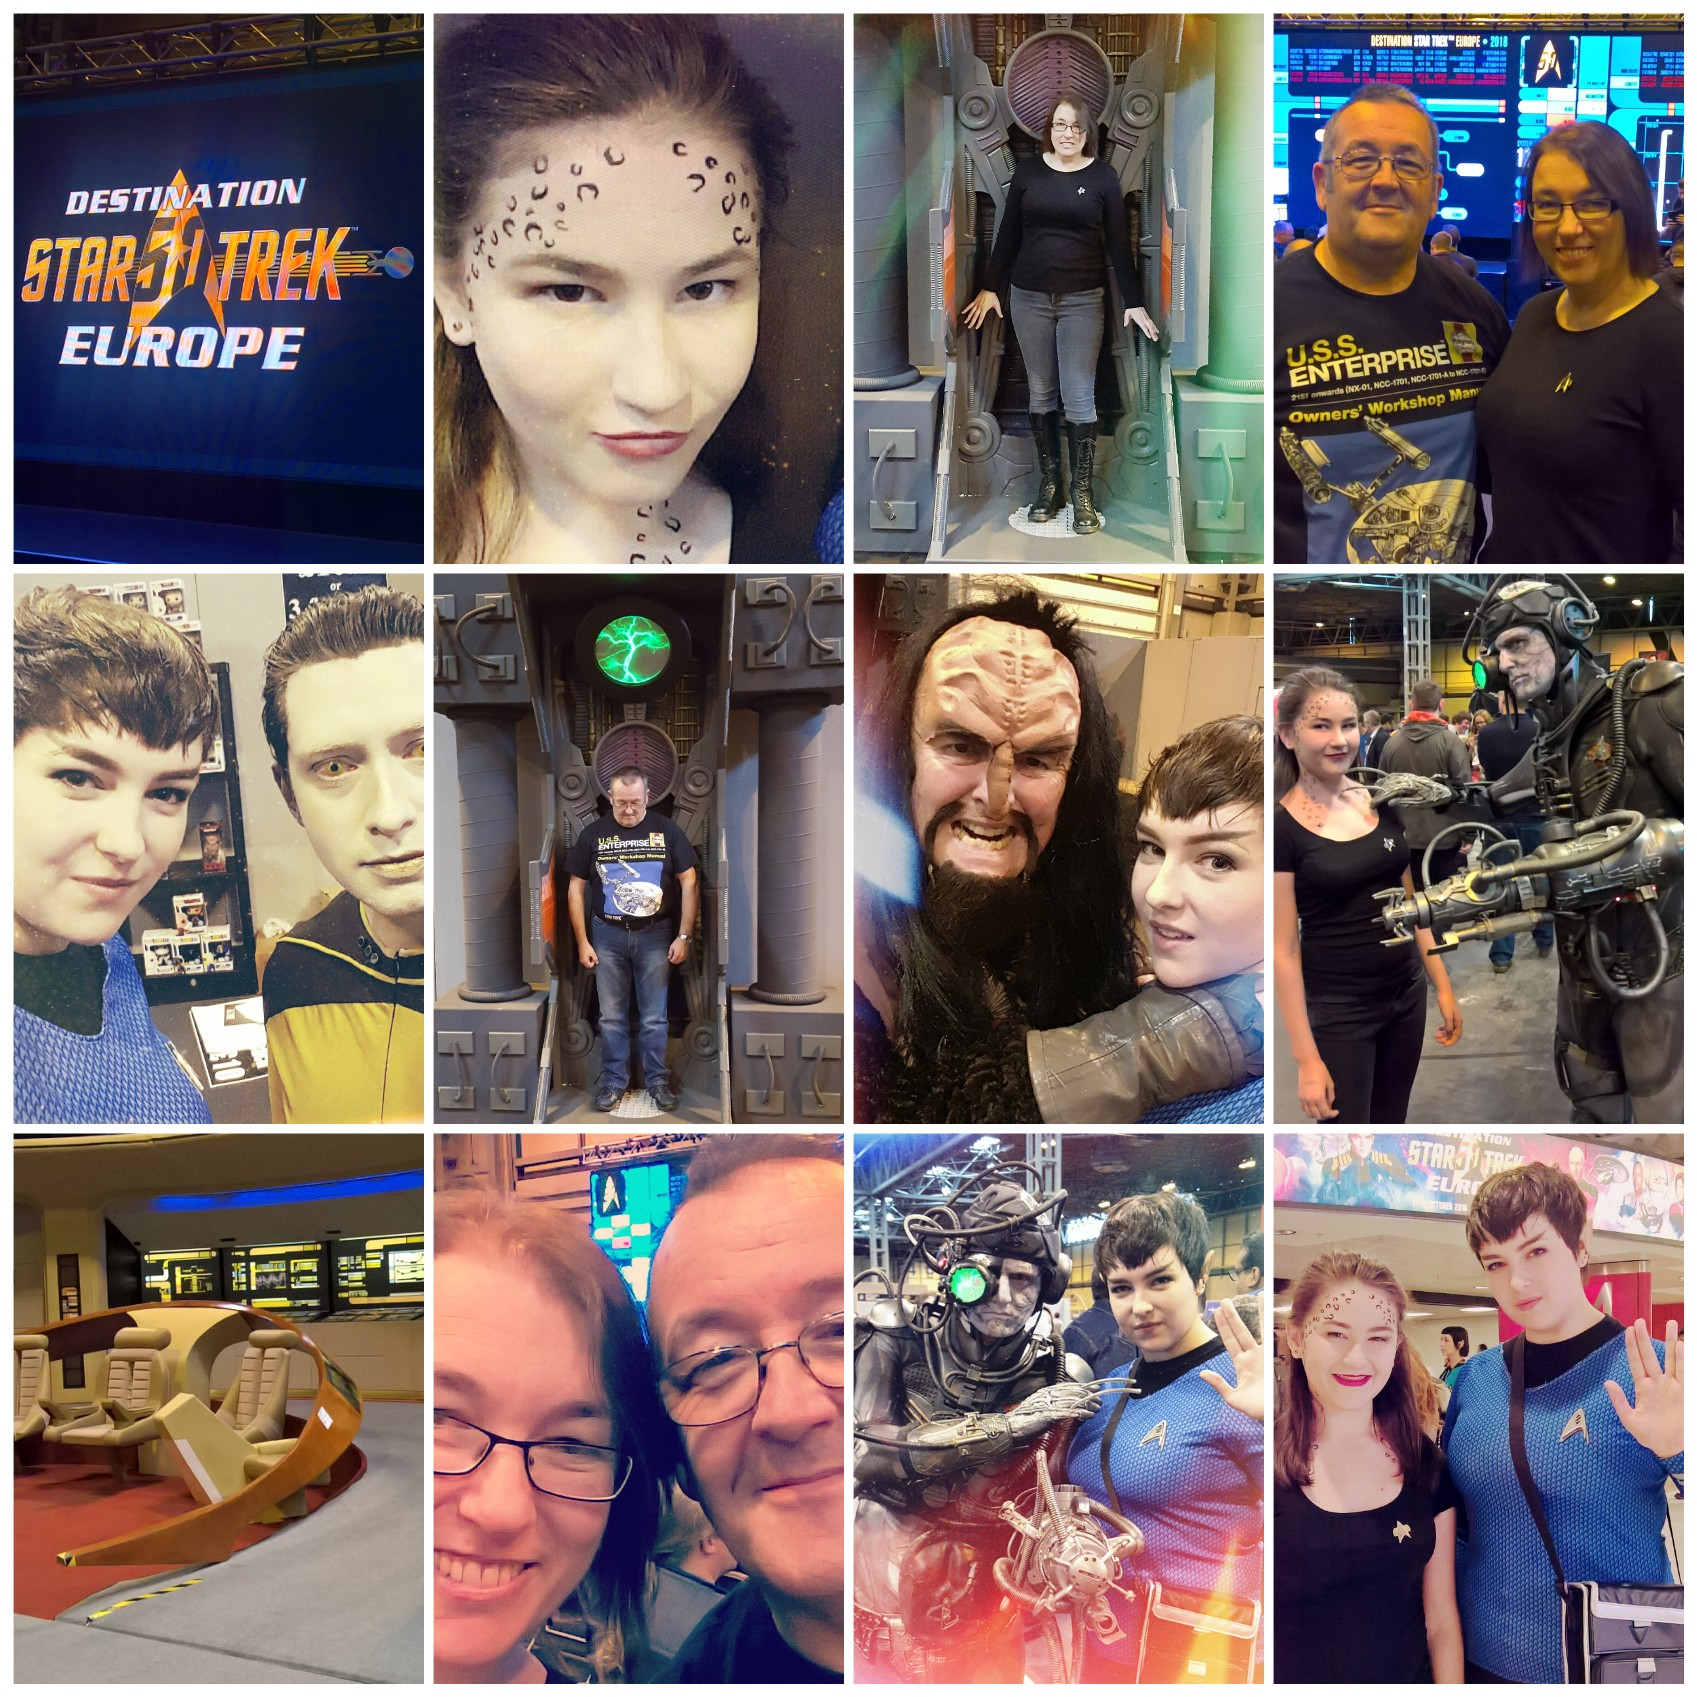 destination-star-trek-50th-anniversary-oct-2016